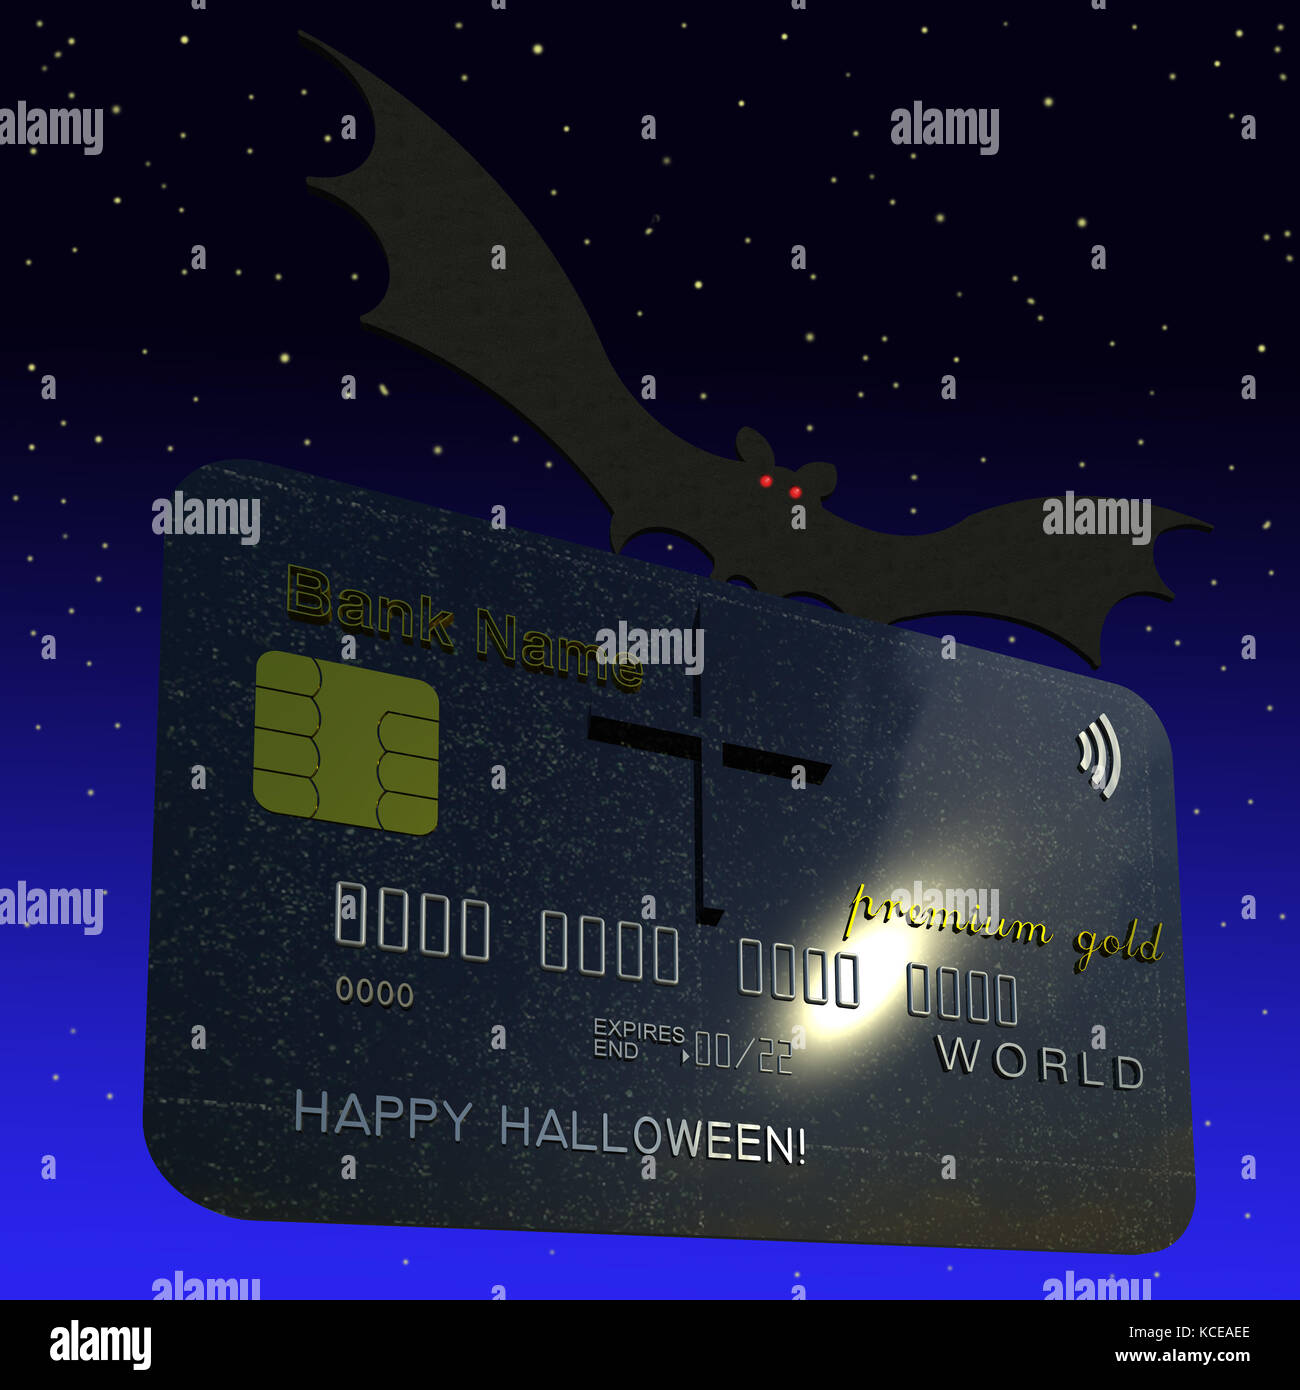 Polished Black Granite Texture With Happy Halloween Card 3d Illustration Black Polished Granite Texture As Tombstone Cross Flying Bat Starry Night Sky Background Collection